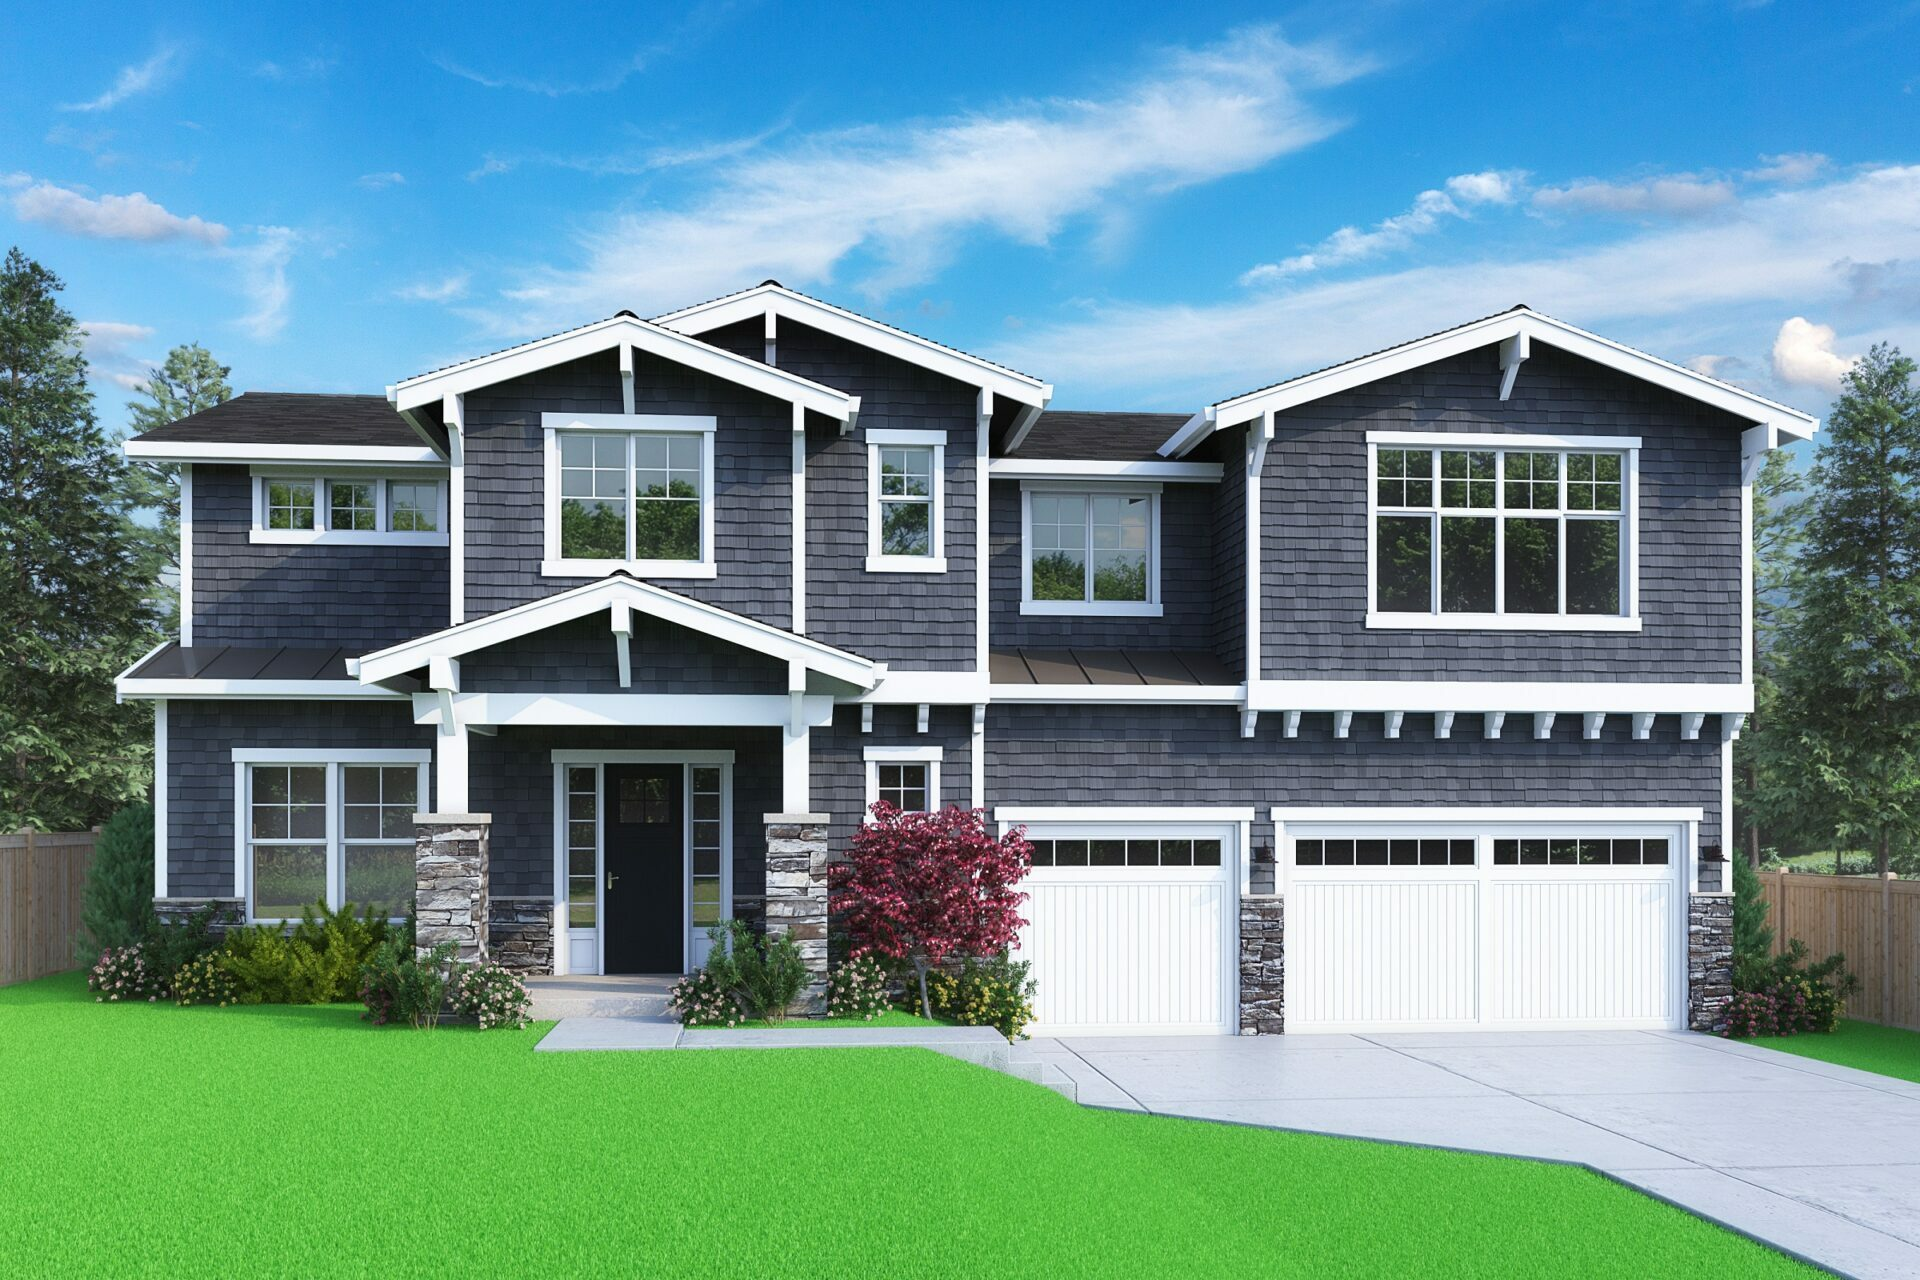 View our new luxury home construction on 12859 NE 91st St, in Kirkland, WA from MN Custom Homes